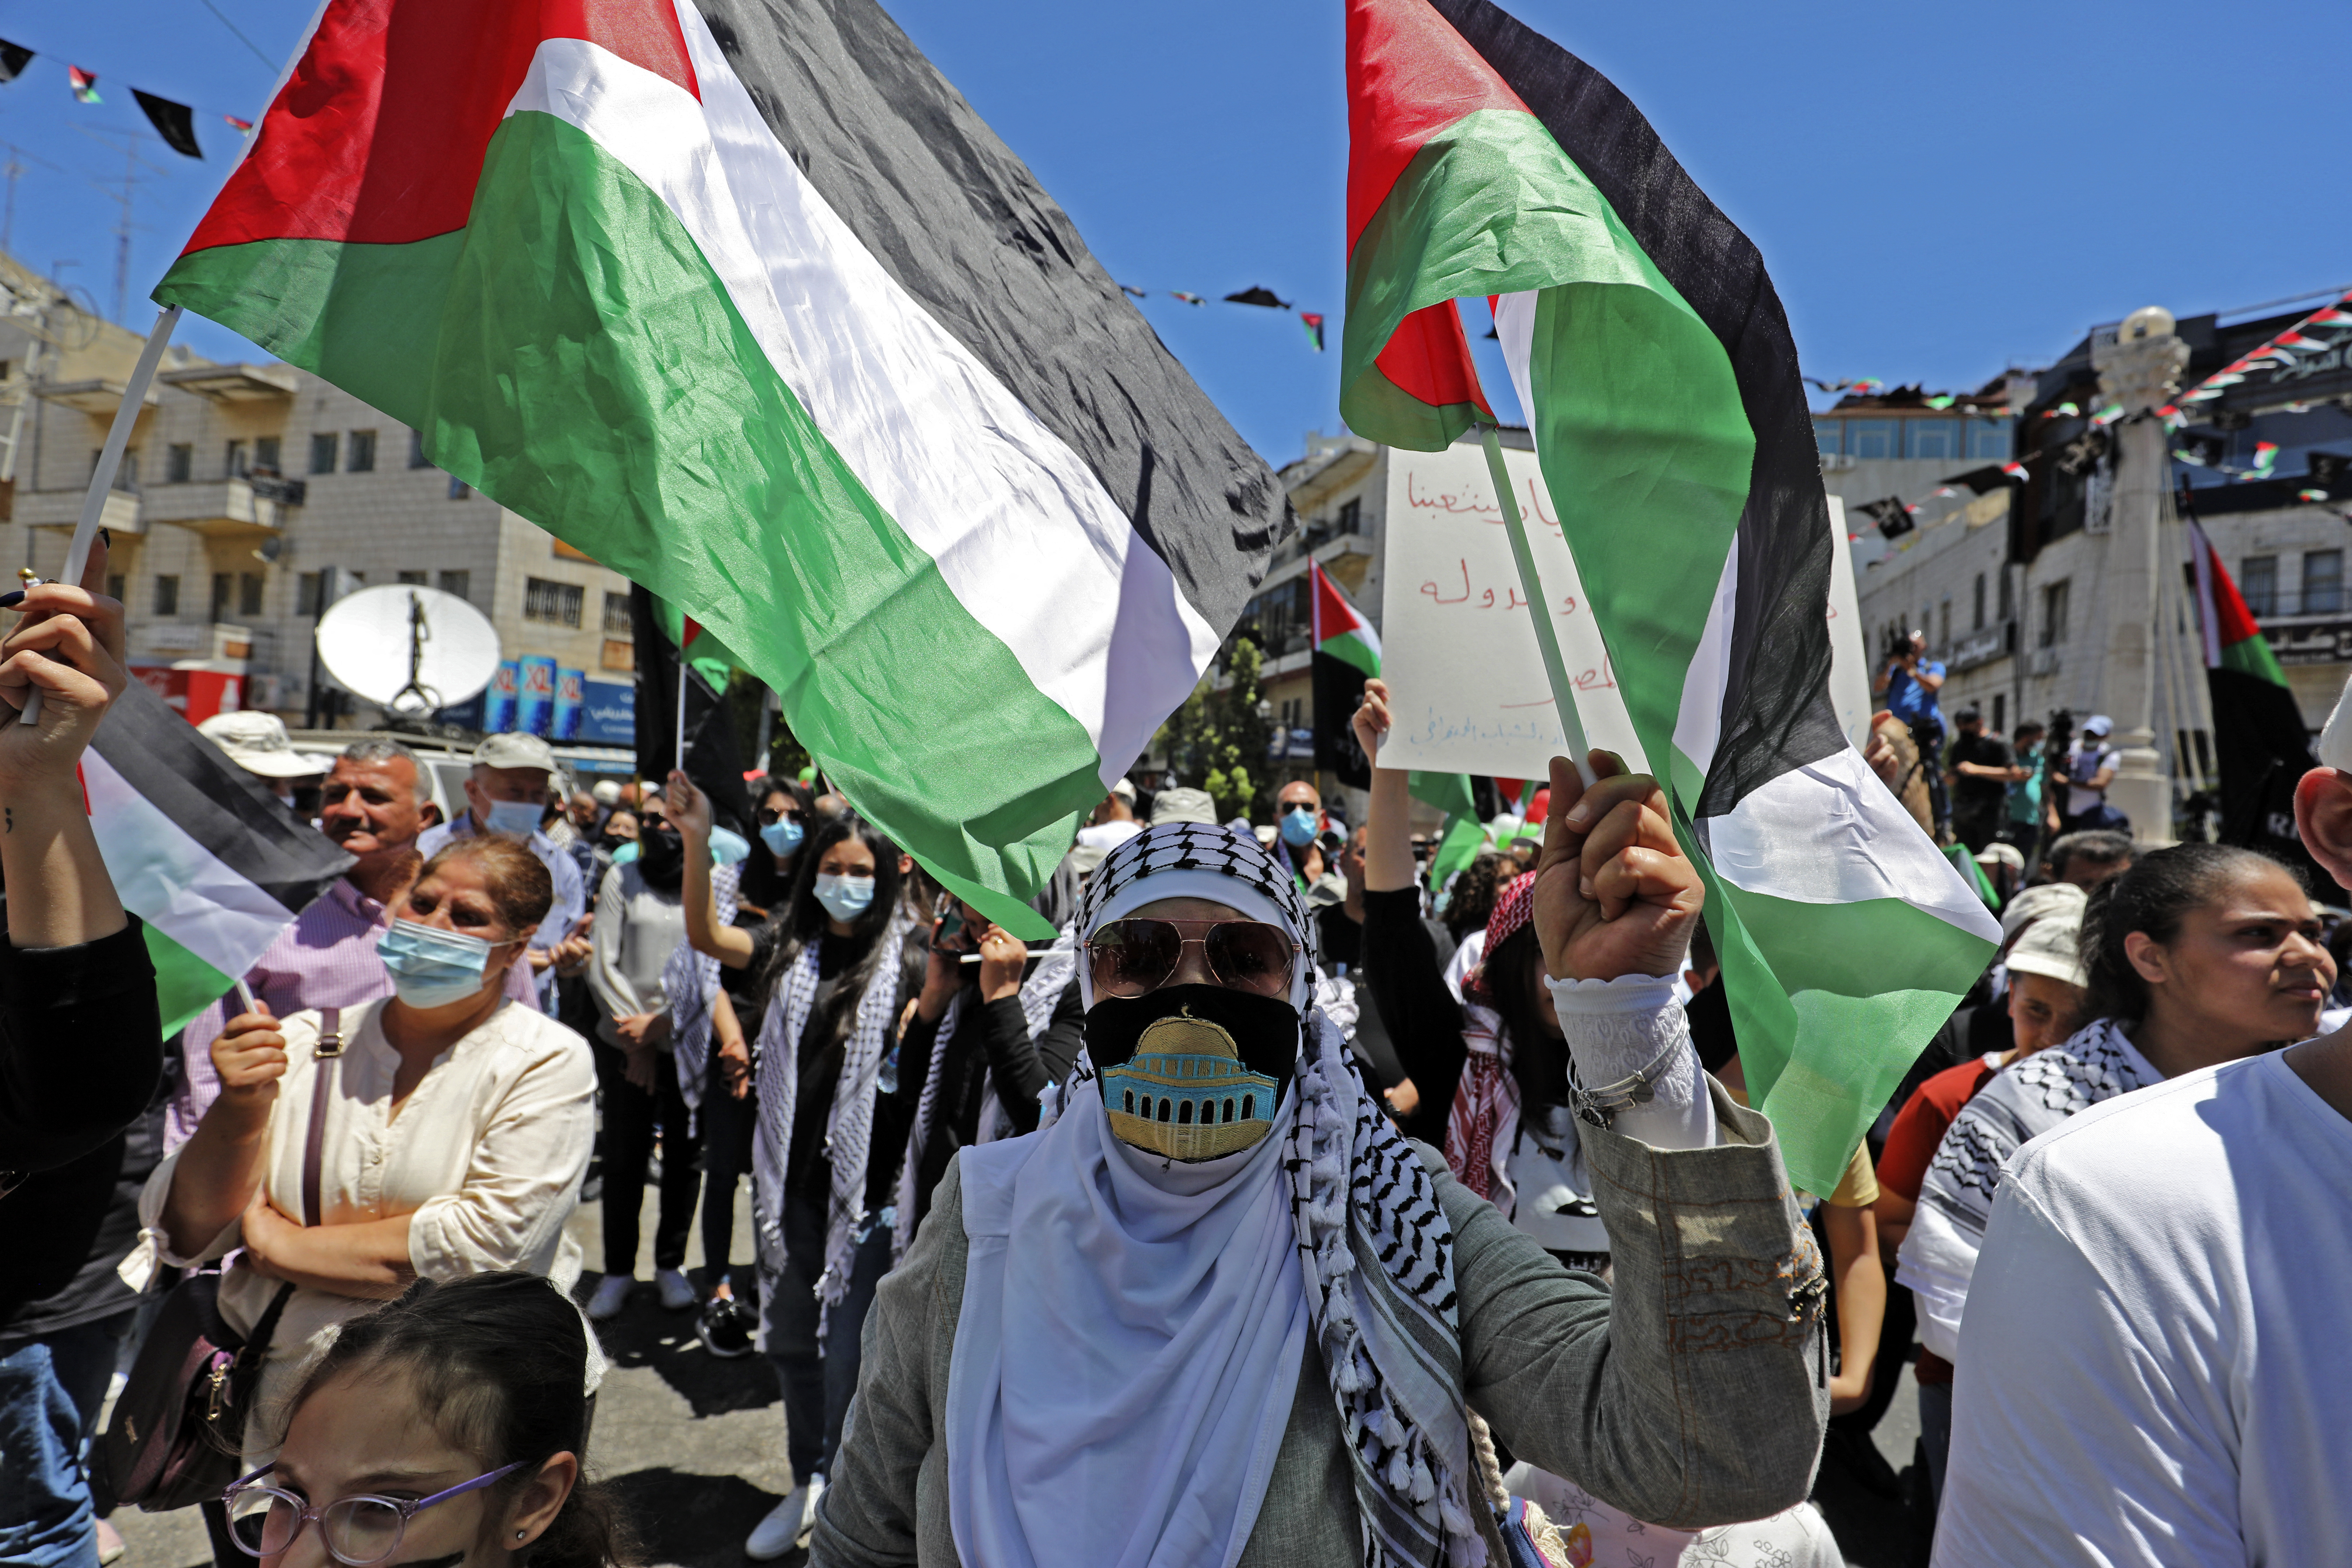 Palestinians protest in the occupied West Bank village of Salem on 15 May 2021 (AFP)